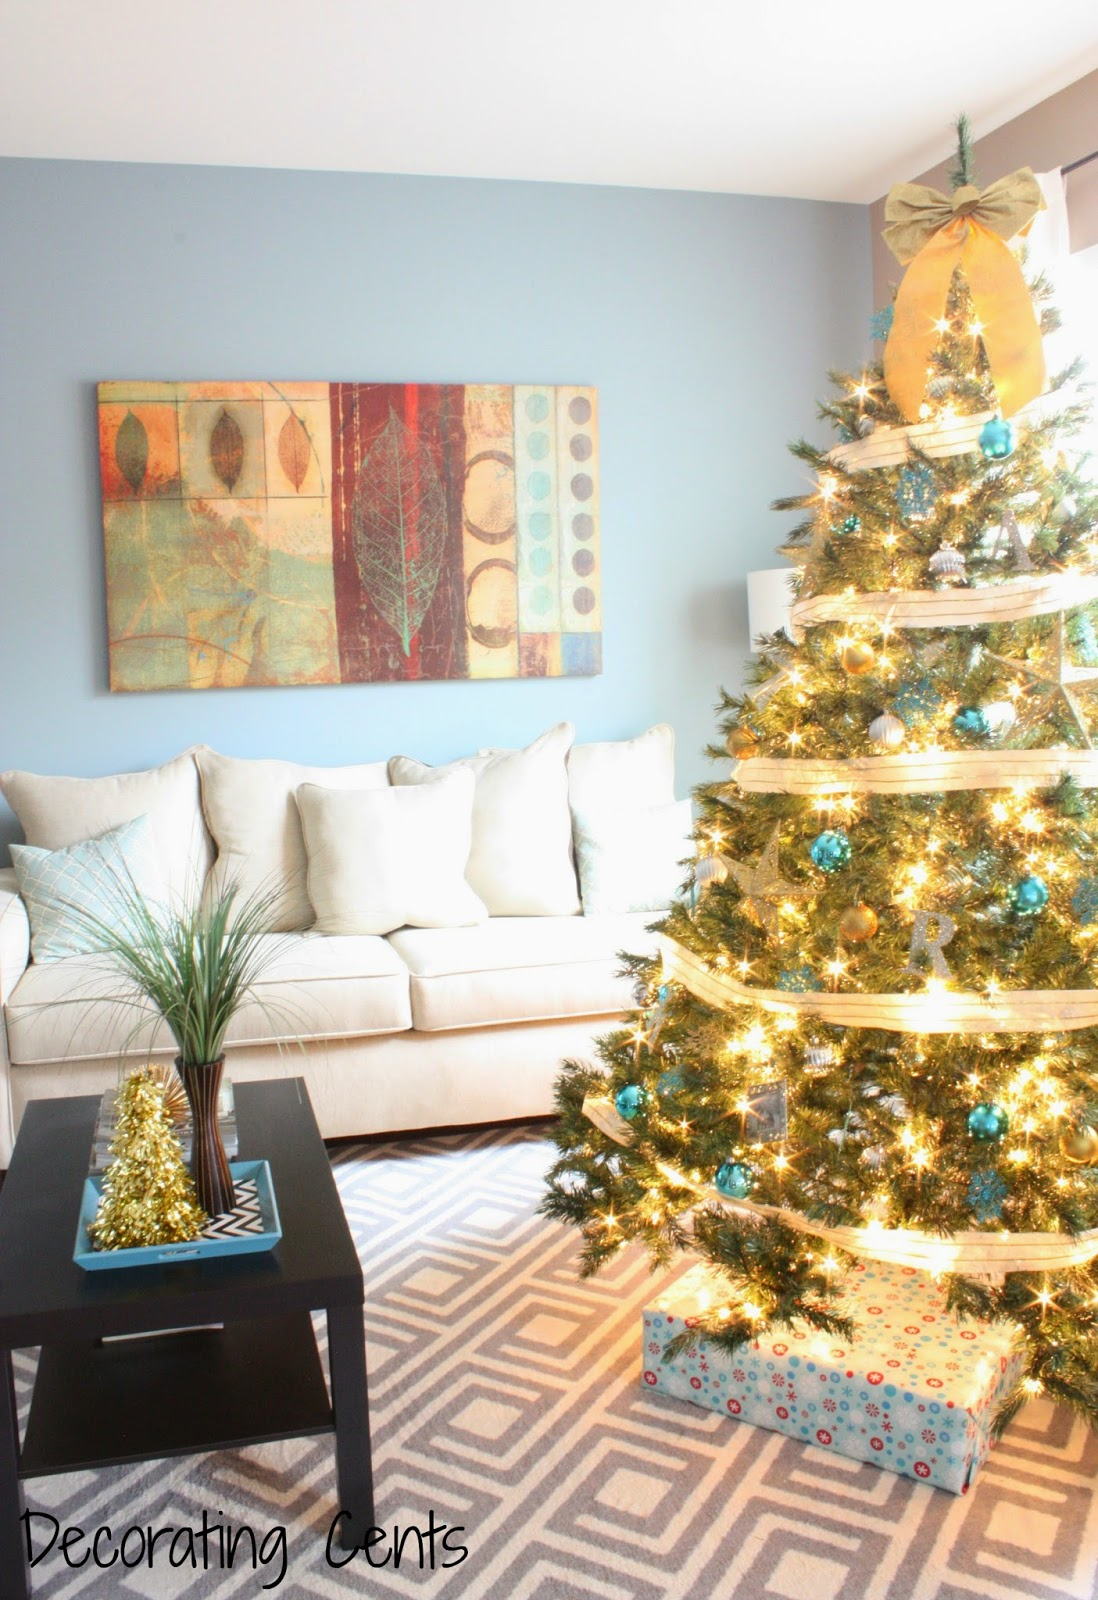 Decorating Cents: Gold, Silver, and Blue Christmas Tree